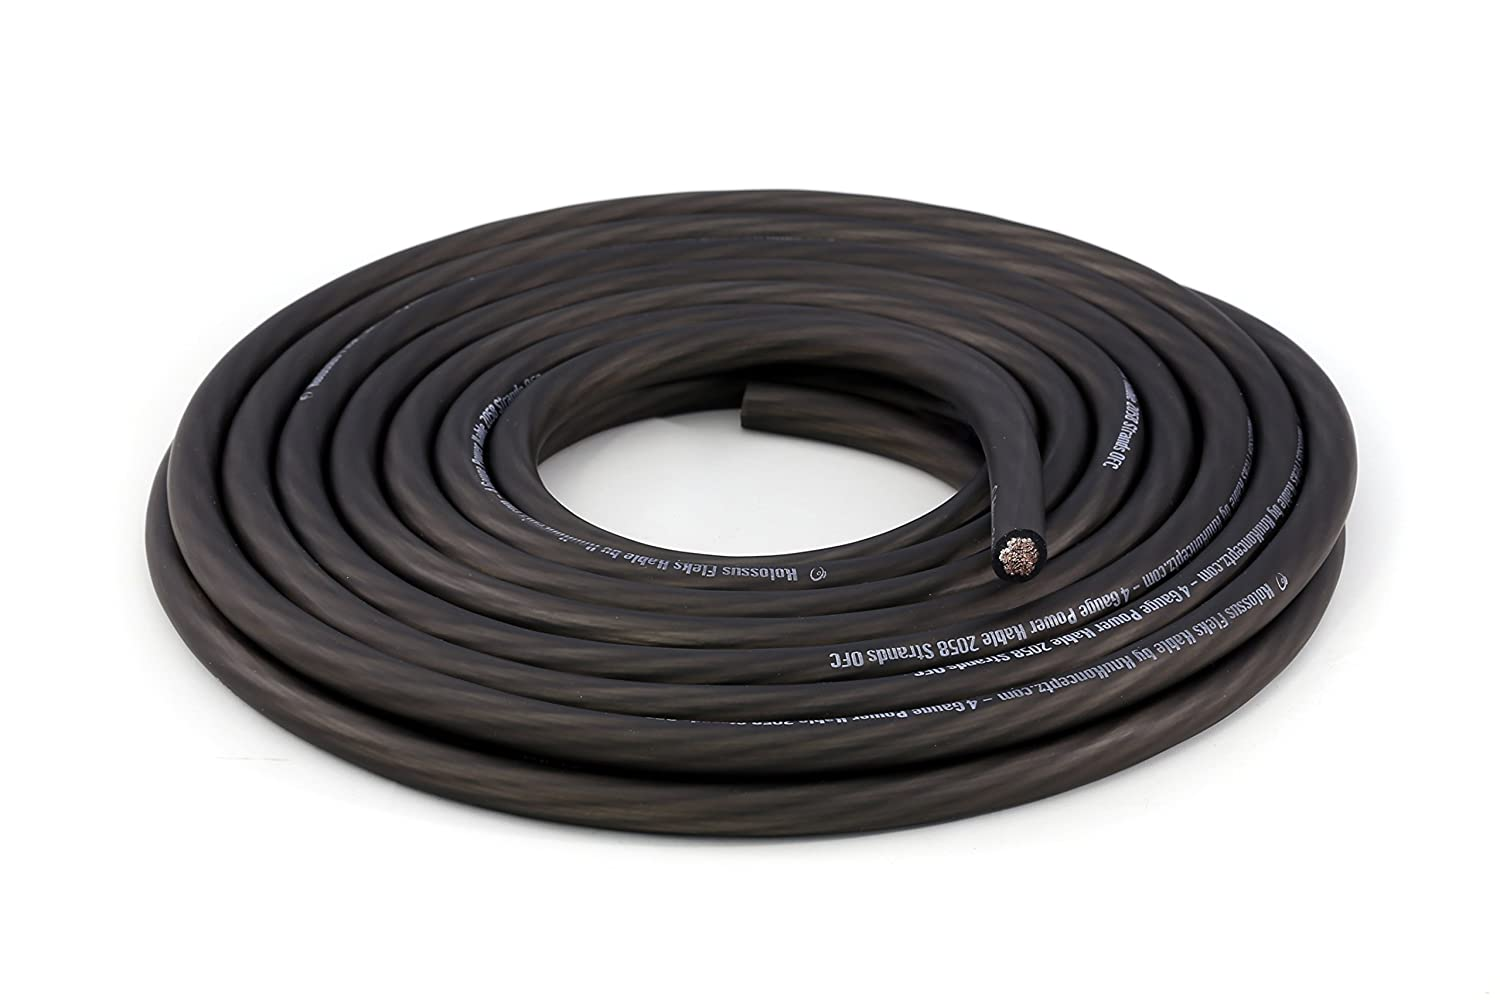 15 ft 4 AWG KnuKonceptz Kolossus Flex Kable OFC 4 Gauge Power Wire Copper Cable Black